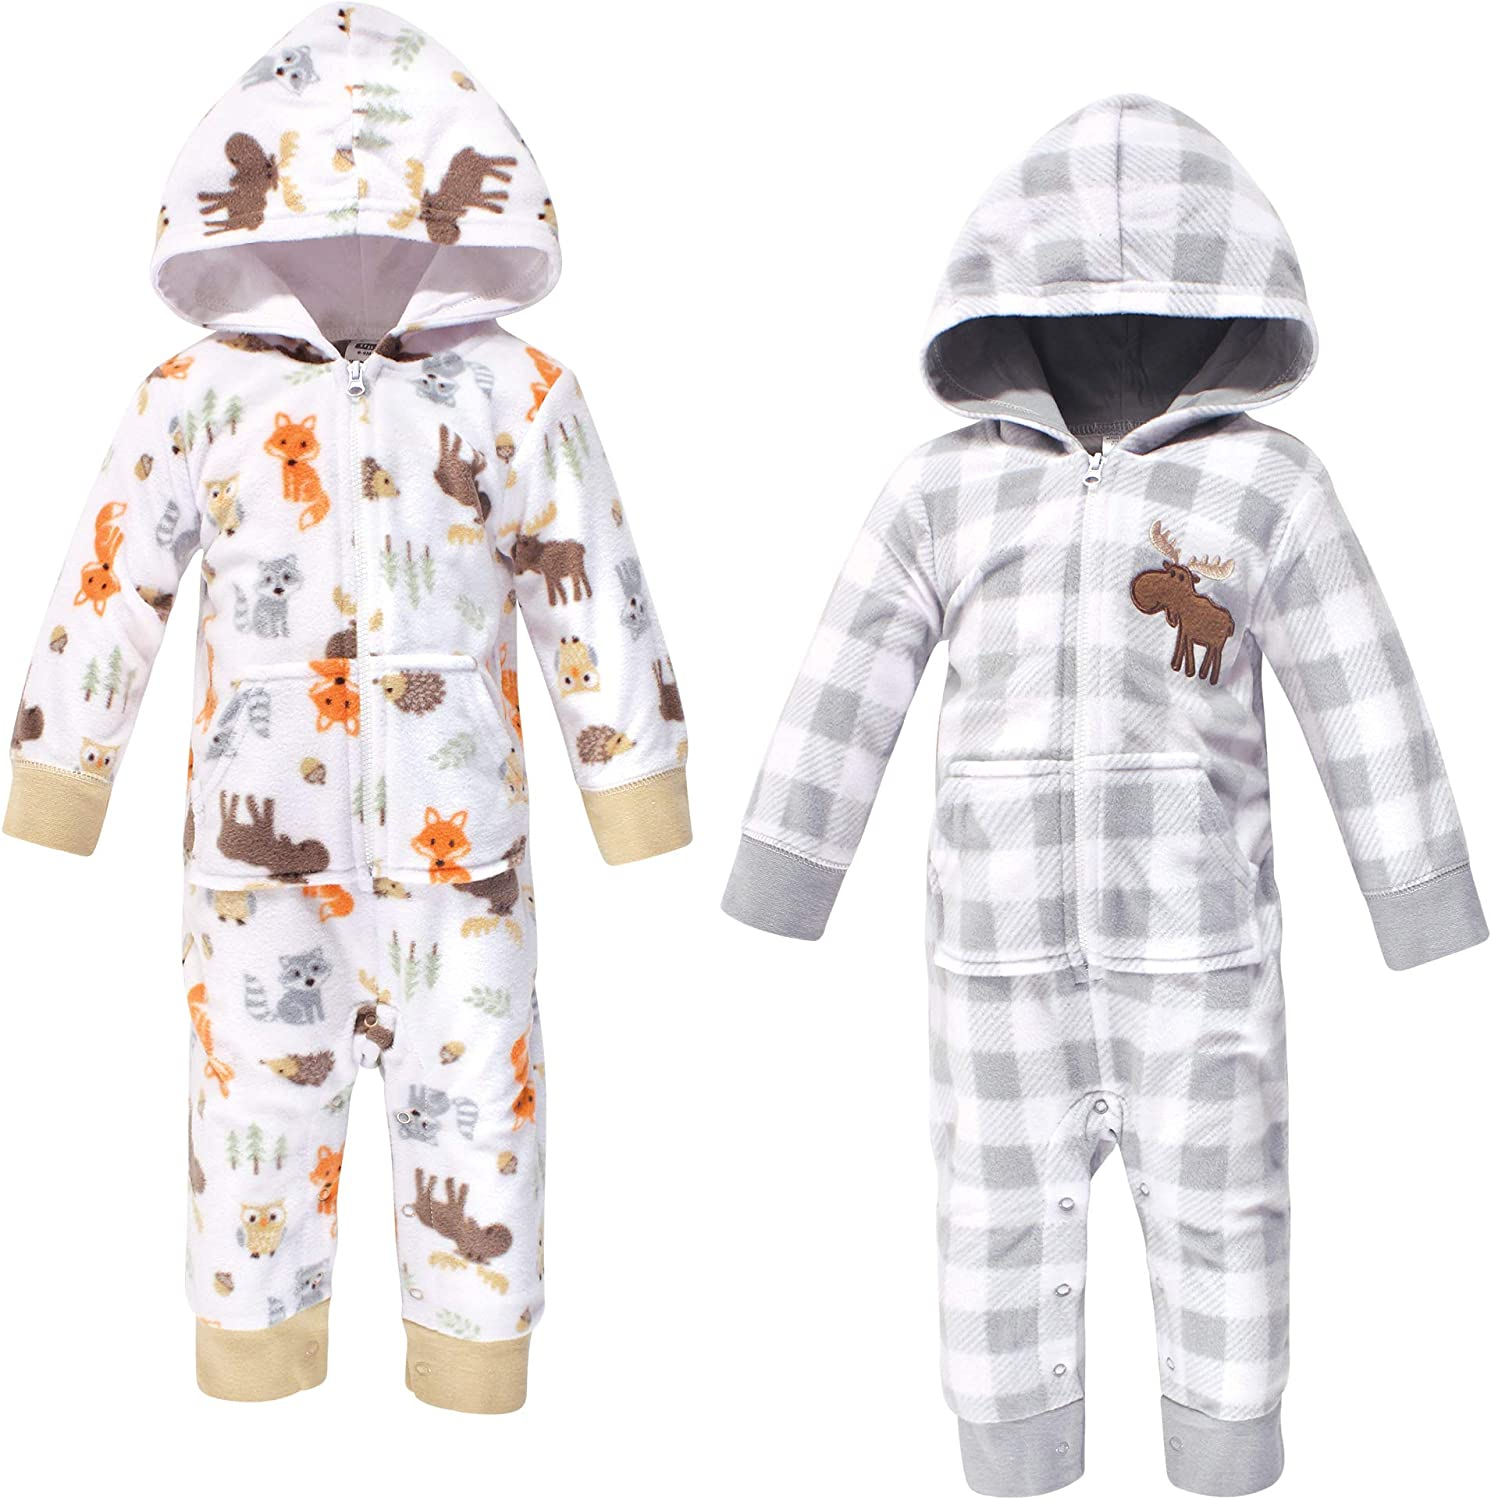 Hudson Baby Max 56% OFF Unisex Fleece Jumpsuits Playsui and 2021 spring summer new Coveralls